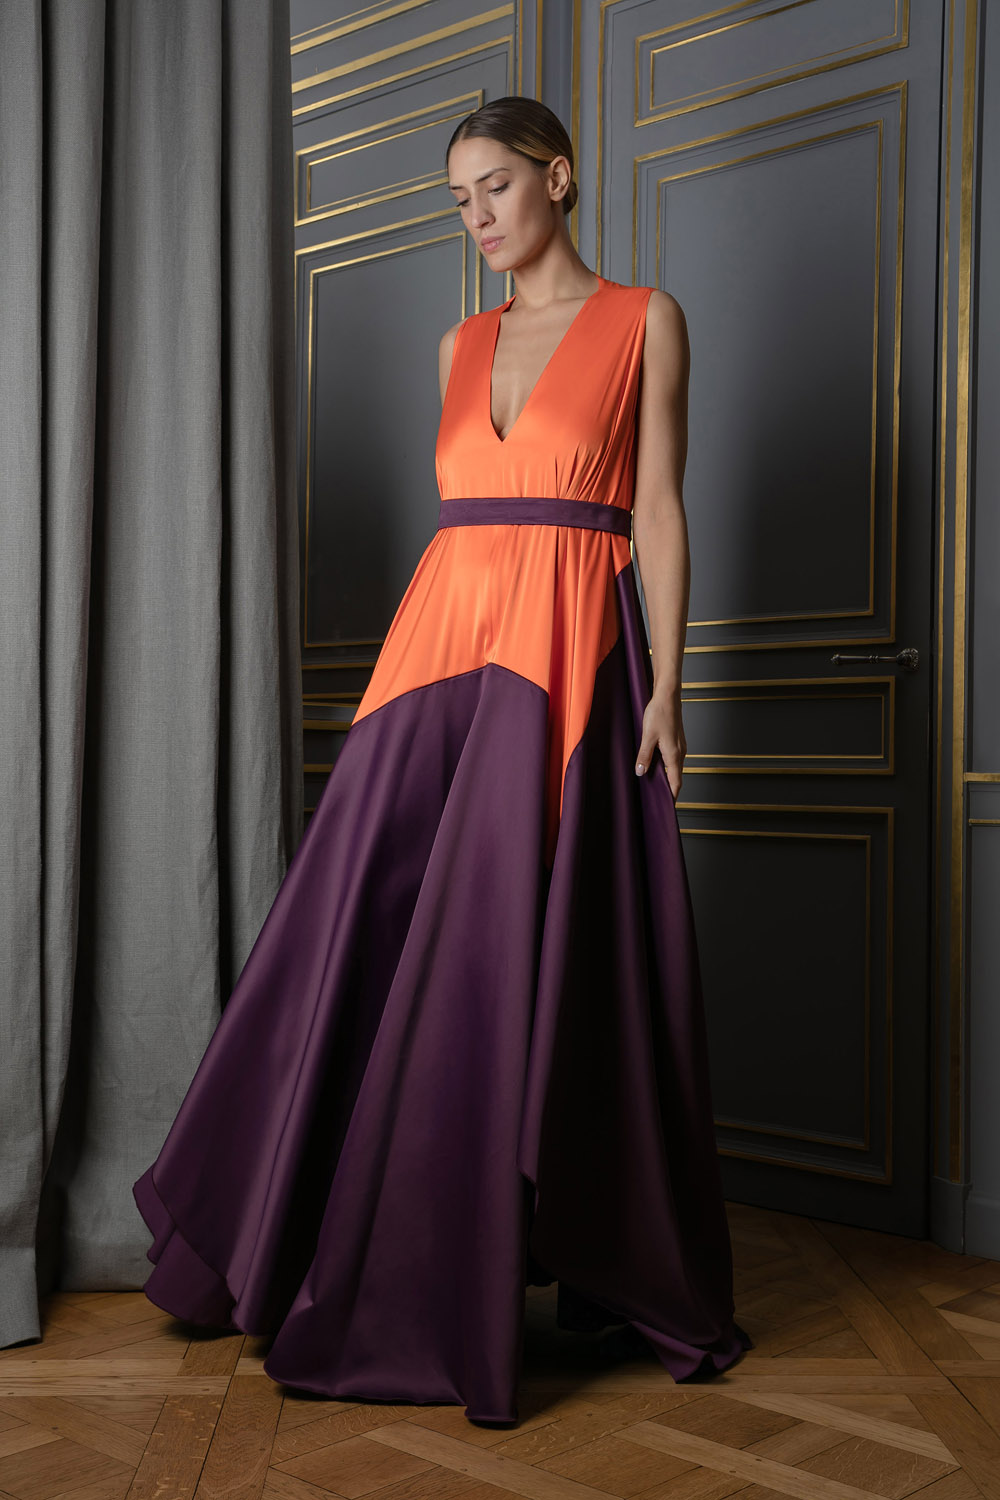 Plunging V-neck gown